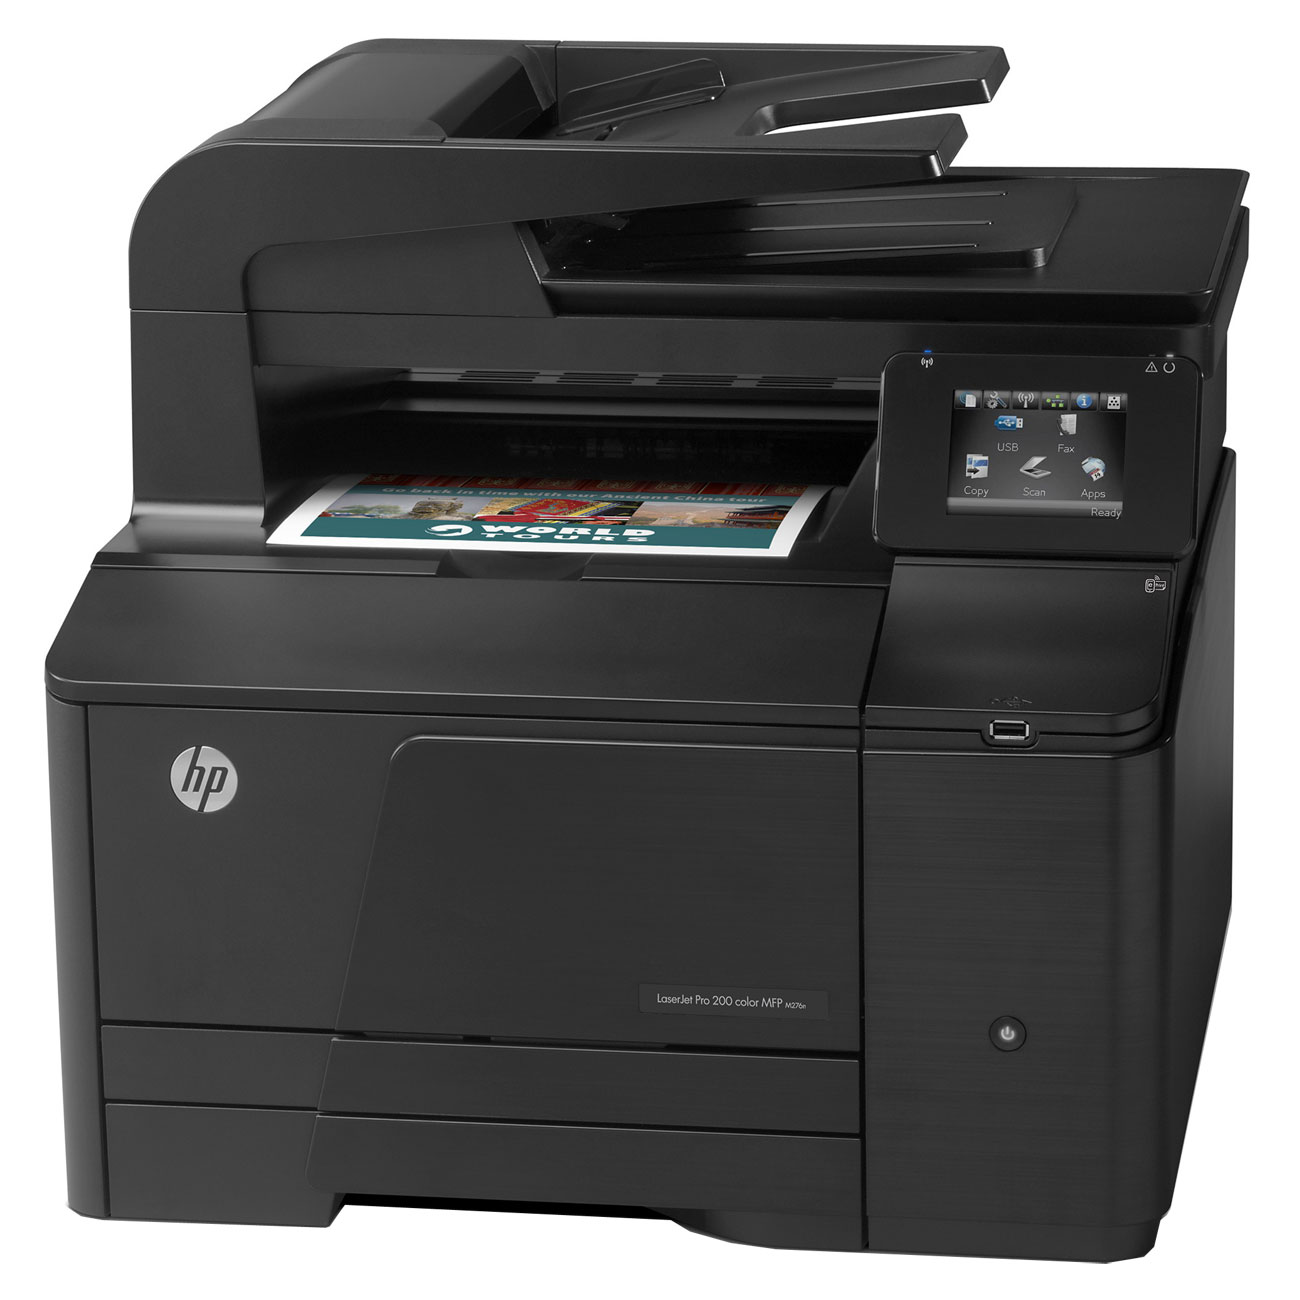 hp laserjet pro 200 color mfp m276n cf144a imprimante multifonction hp sur ldlc. Black Bedroom Furniture Sets. Home Design Ideas